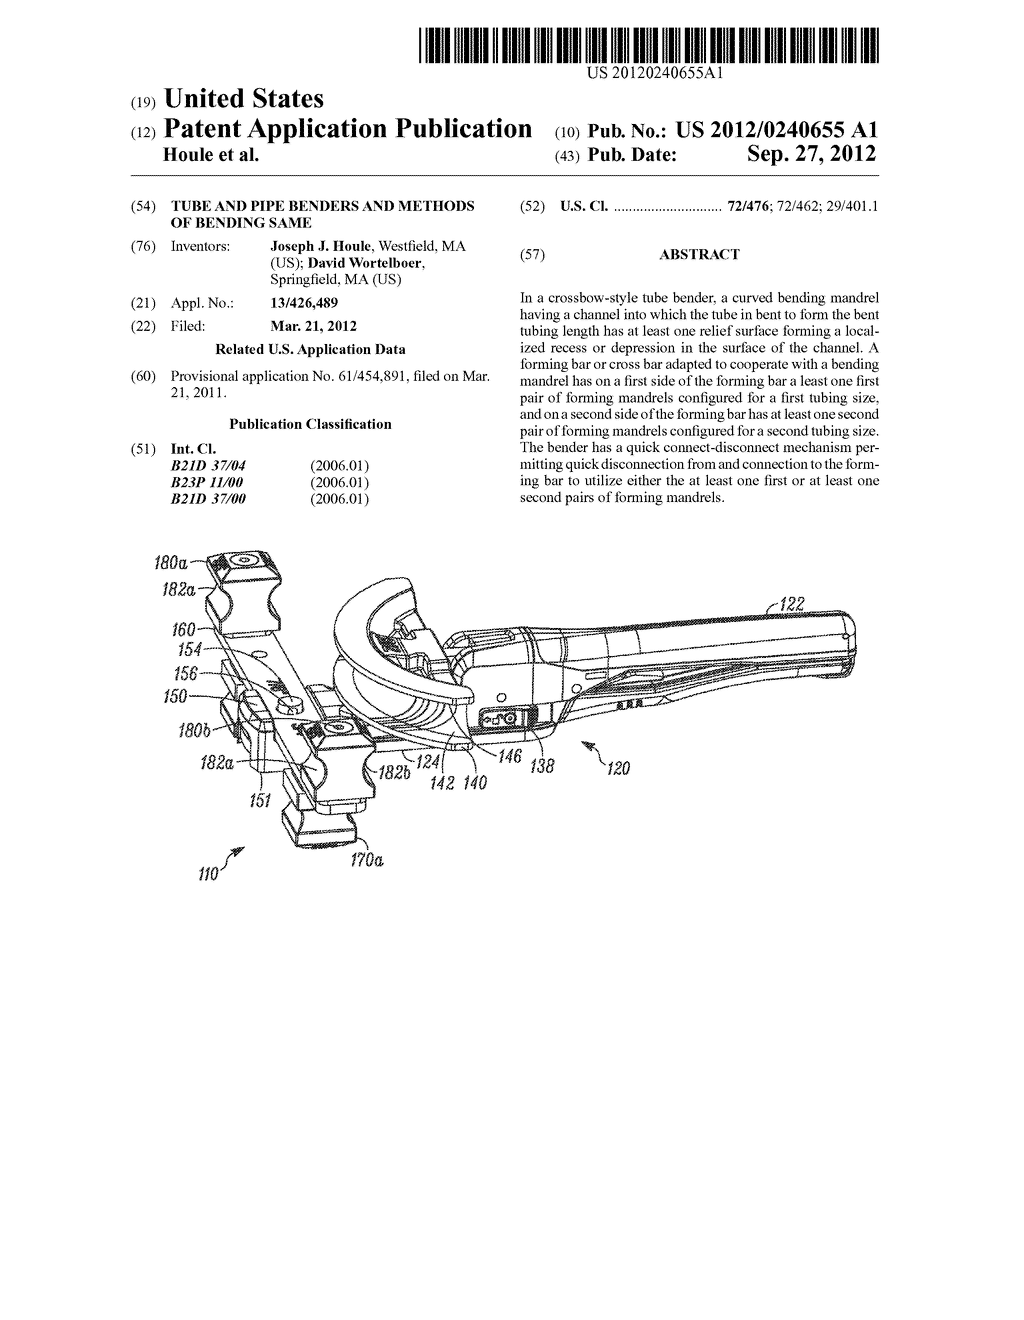 Tube and Pipe Benders and Methods of Bending Same - diagram, schematic, and image 01